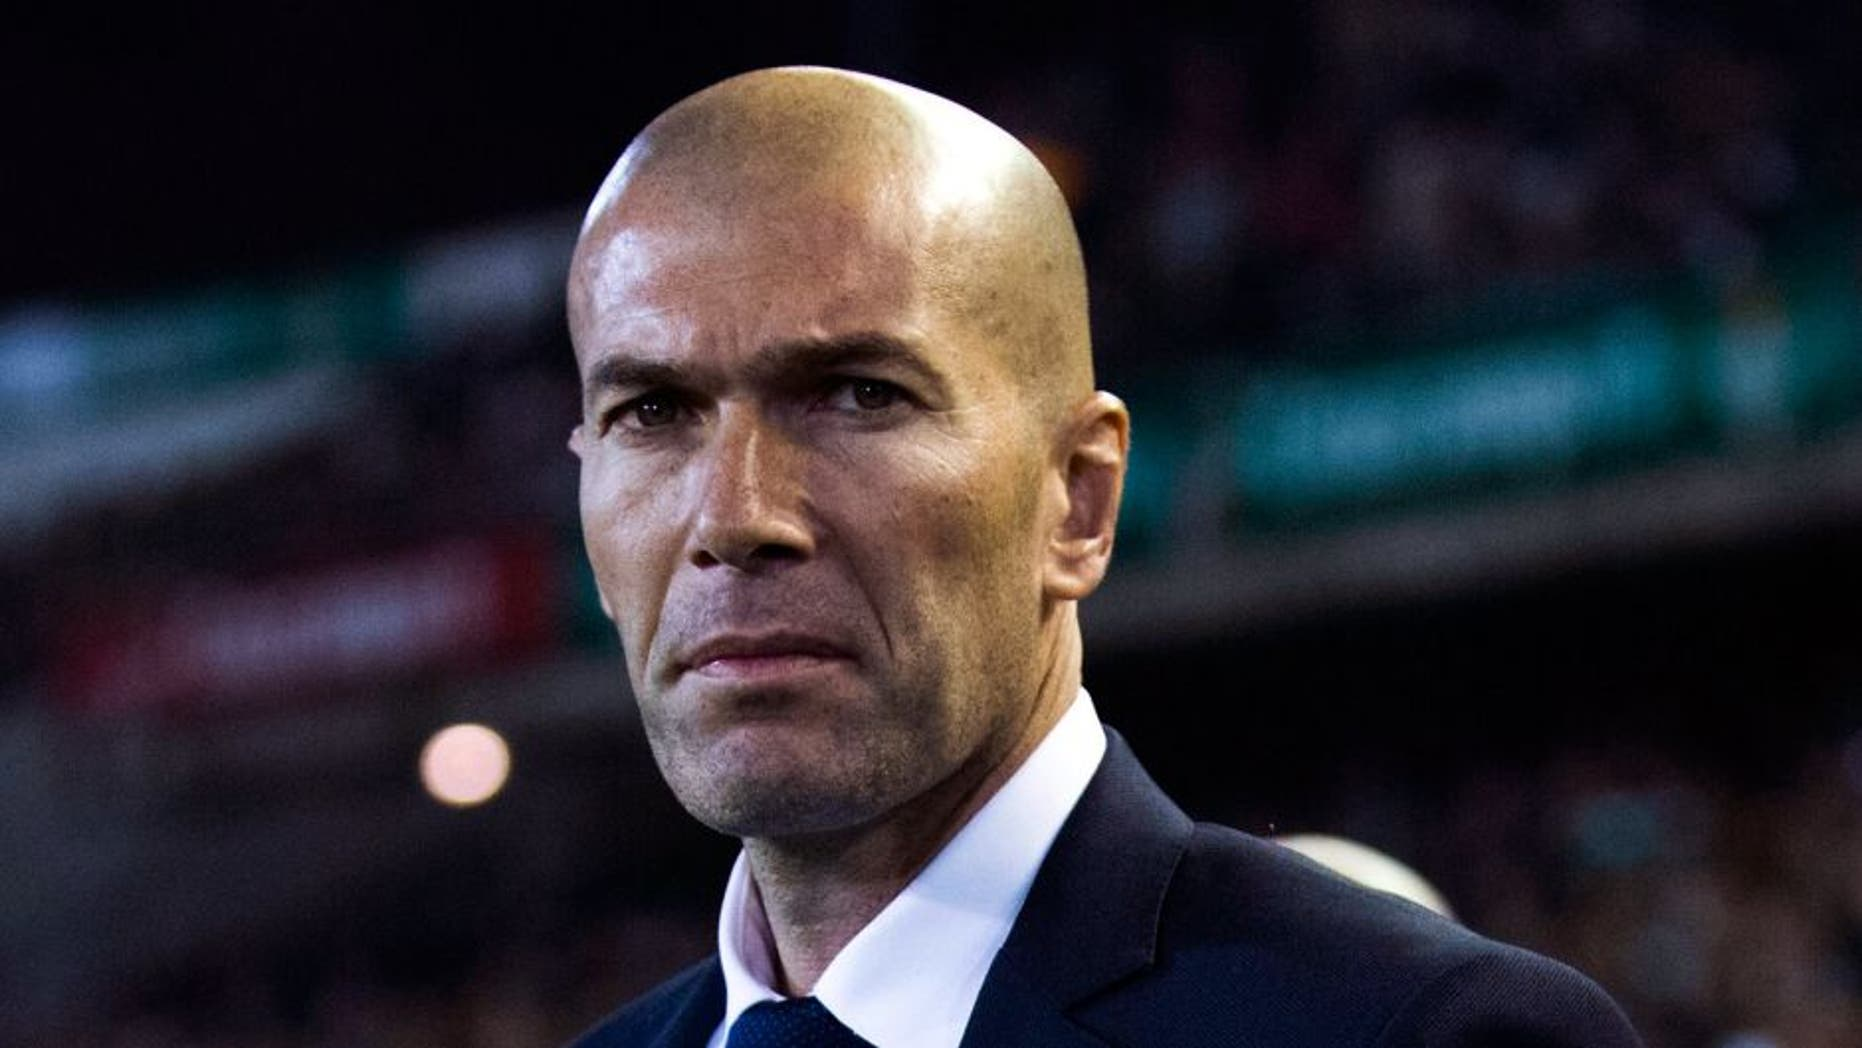 SEVILLE, SPAIN - JANUARY 24: Head coach Zinedine Zidane of Real Madrid CF looks on prior to start the La Liga match between Real Betis Balompie and Real Madrid CF at Estadio Benito Villamarin on January 24, 2016 in Seville, Spain. (Photo by Gonzalo Arroyo Moreno/Getty Images)